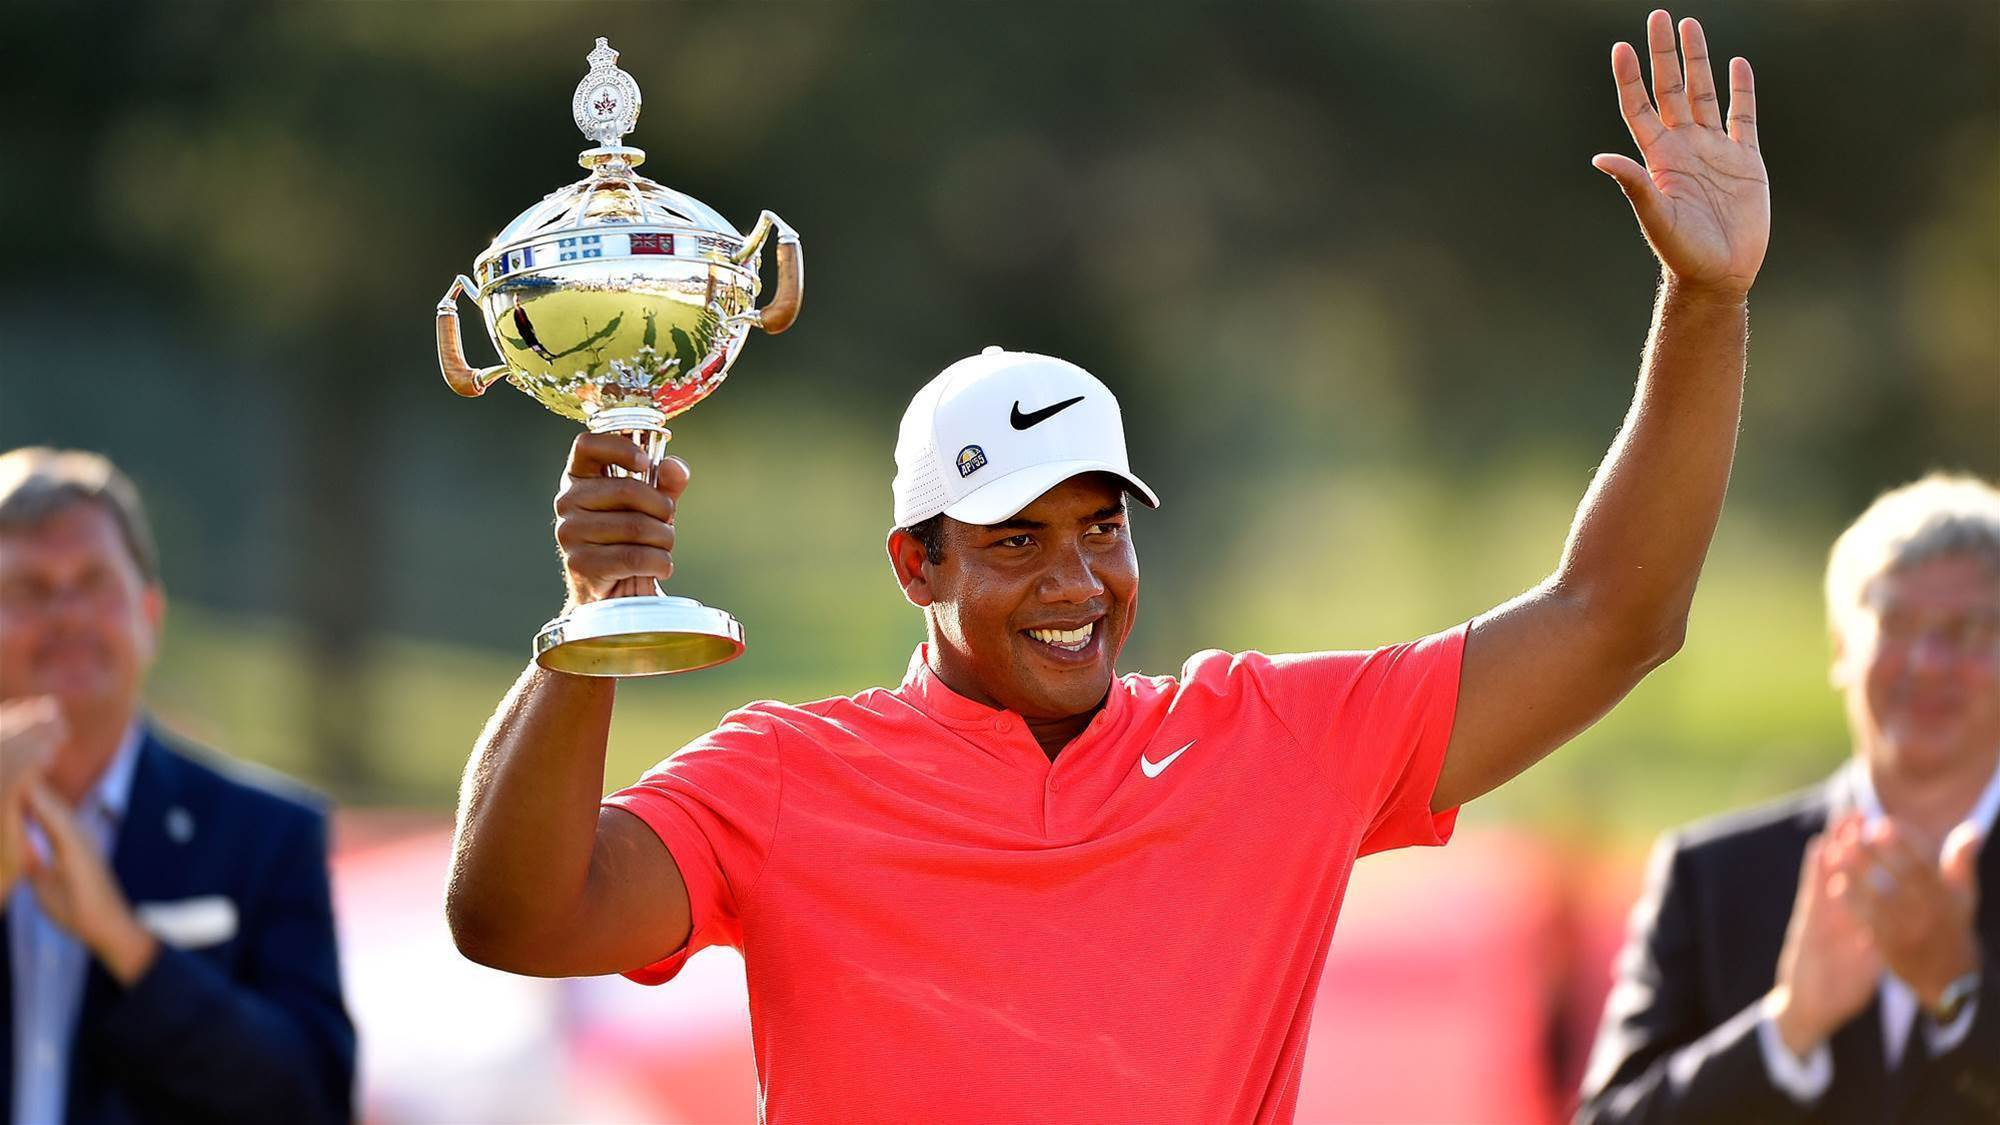 PGA TOUR: Vegas repeats with Canadian victory